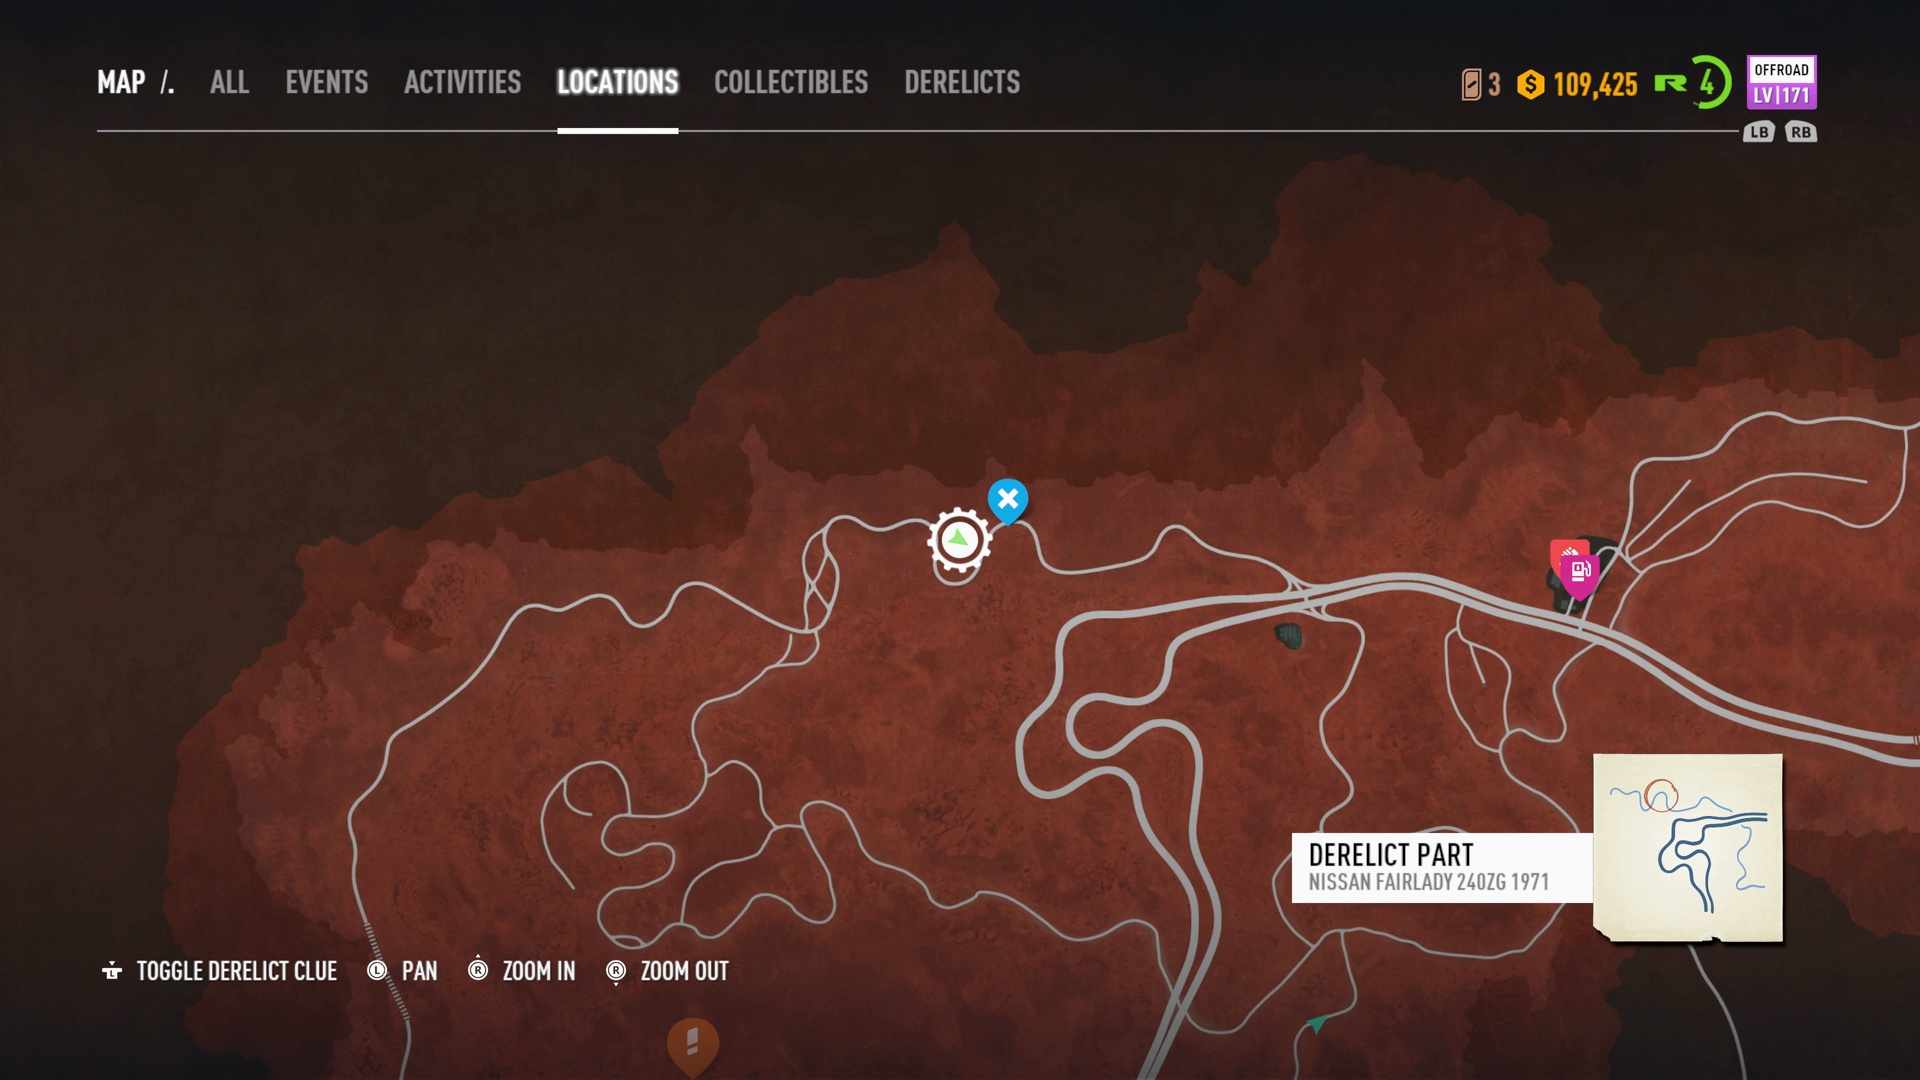 Need For Speed Payback Nissan Fairlady 240zg 1971 Derelict Parts Location League 73 Usgamer